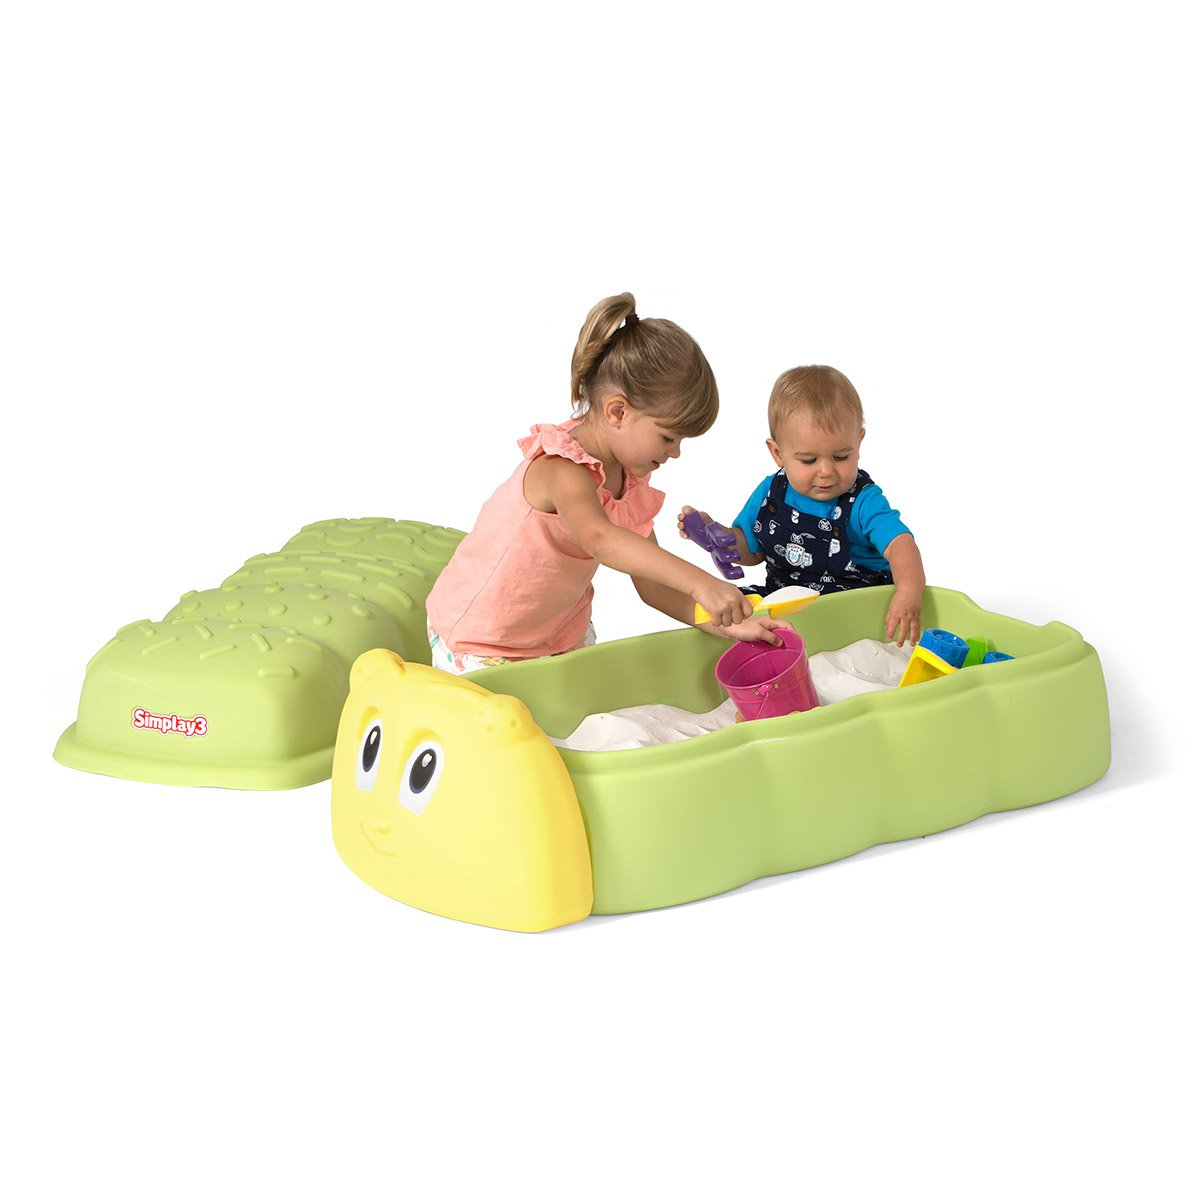 Simplay3 Caterpillar Toy Sand Box with Lid 217010